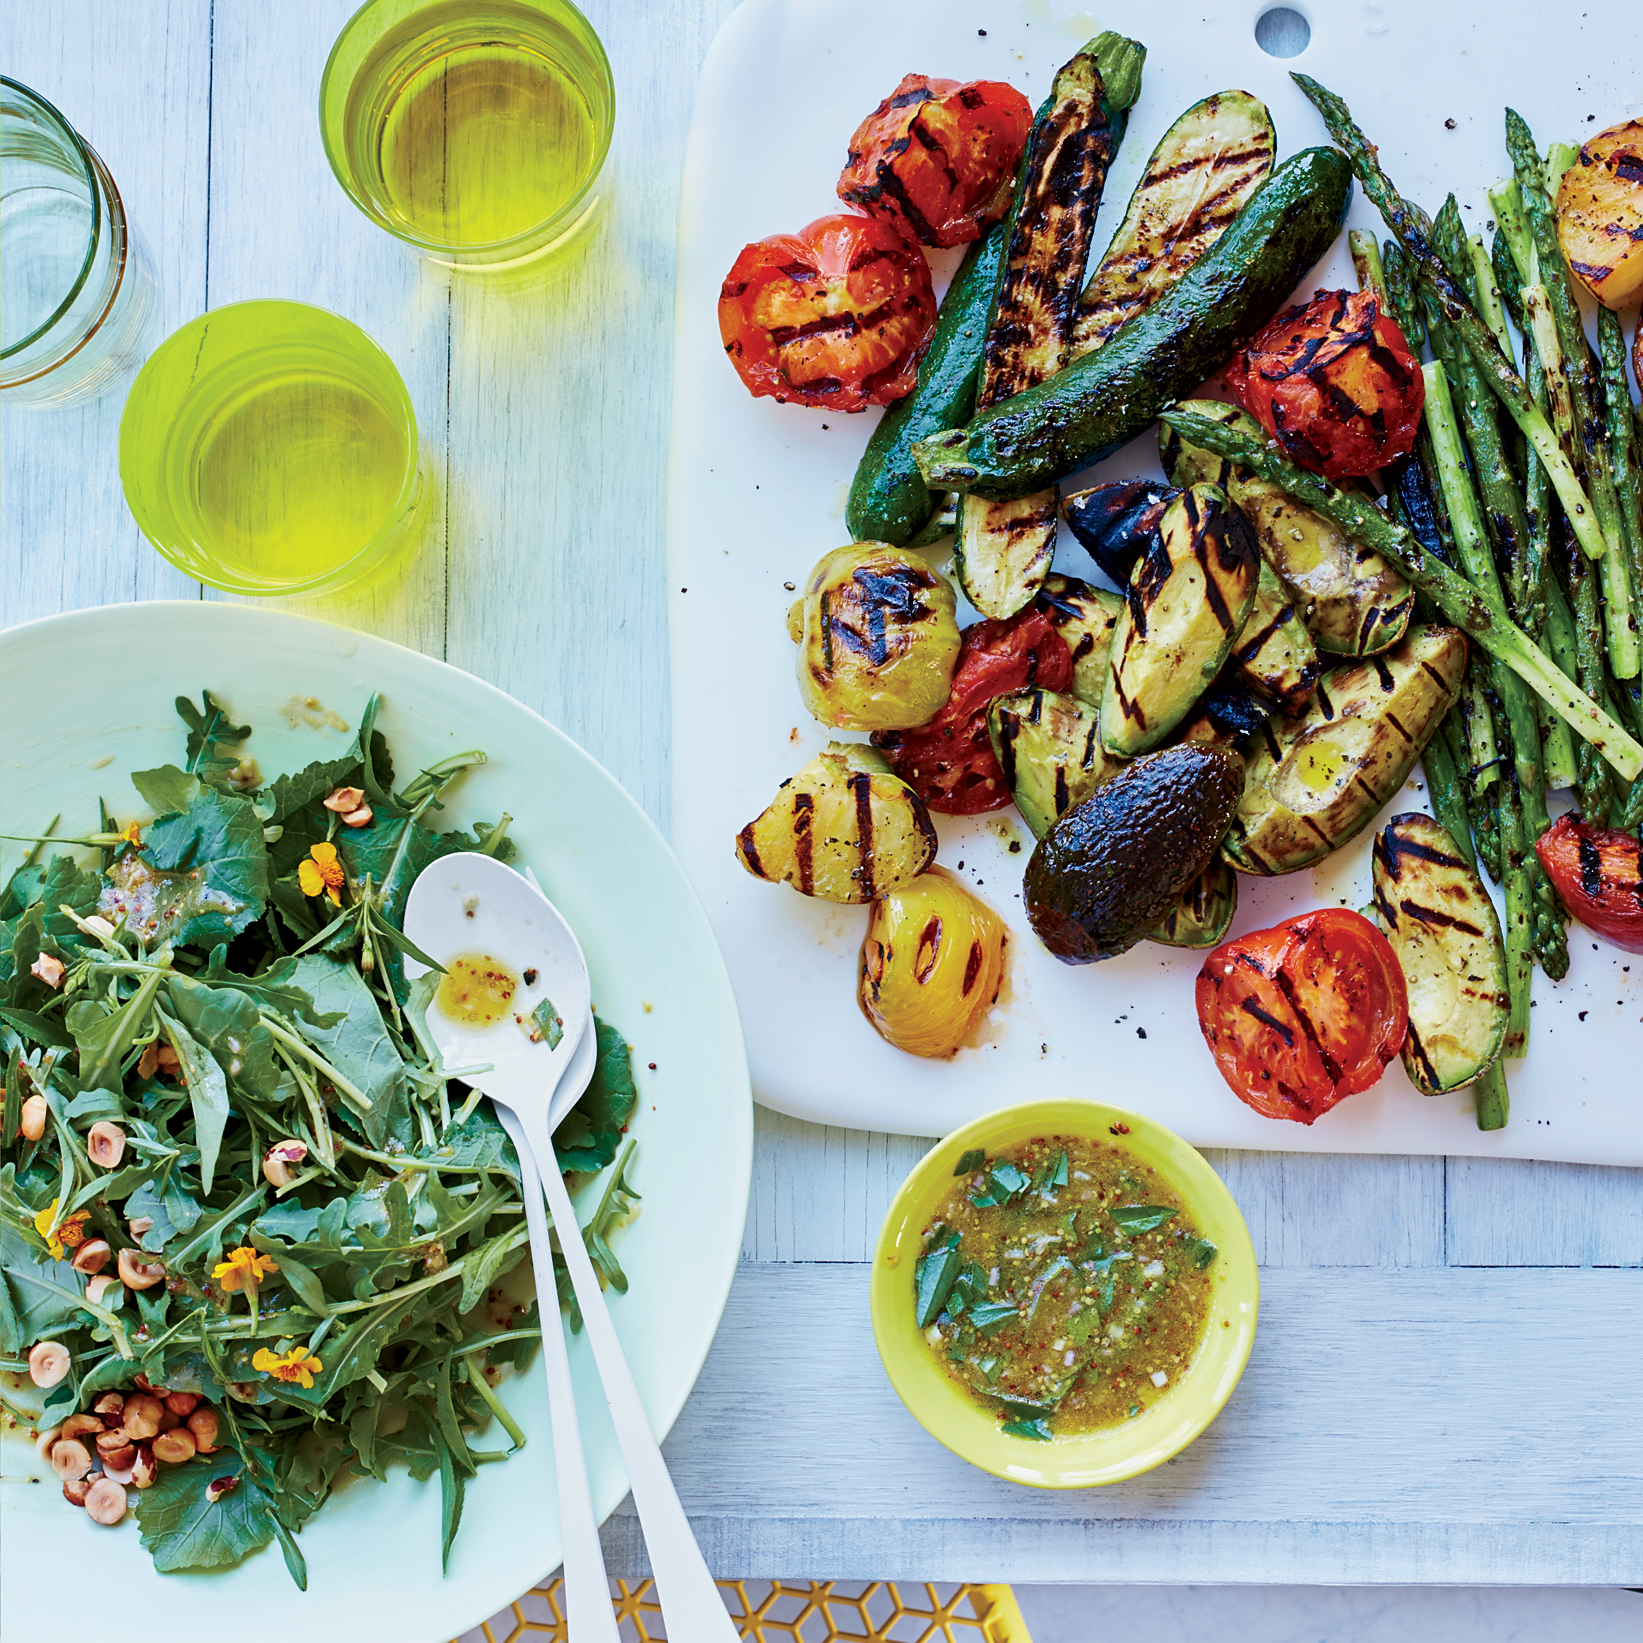 Grilled Vegetables and Summer Greens with Shallot Vinaigrette